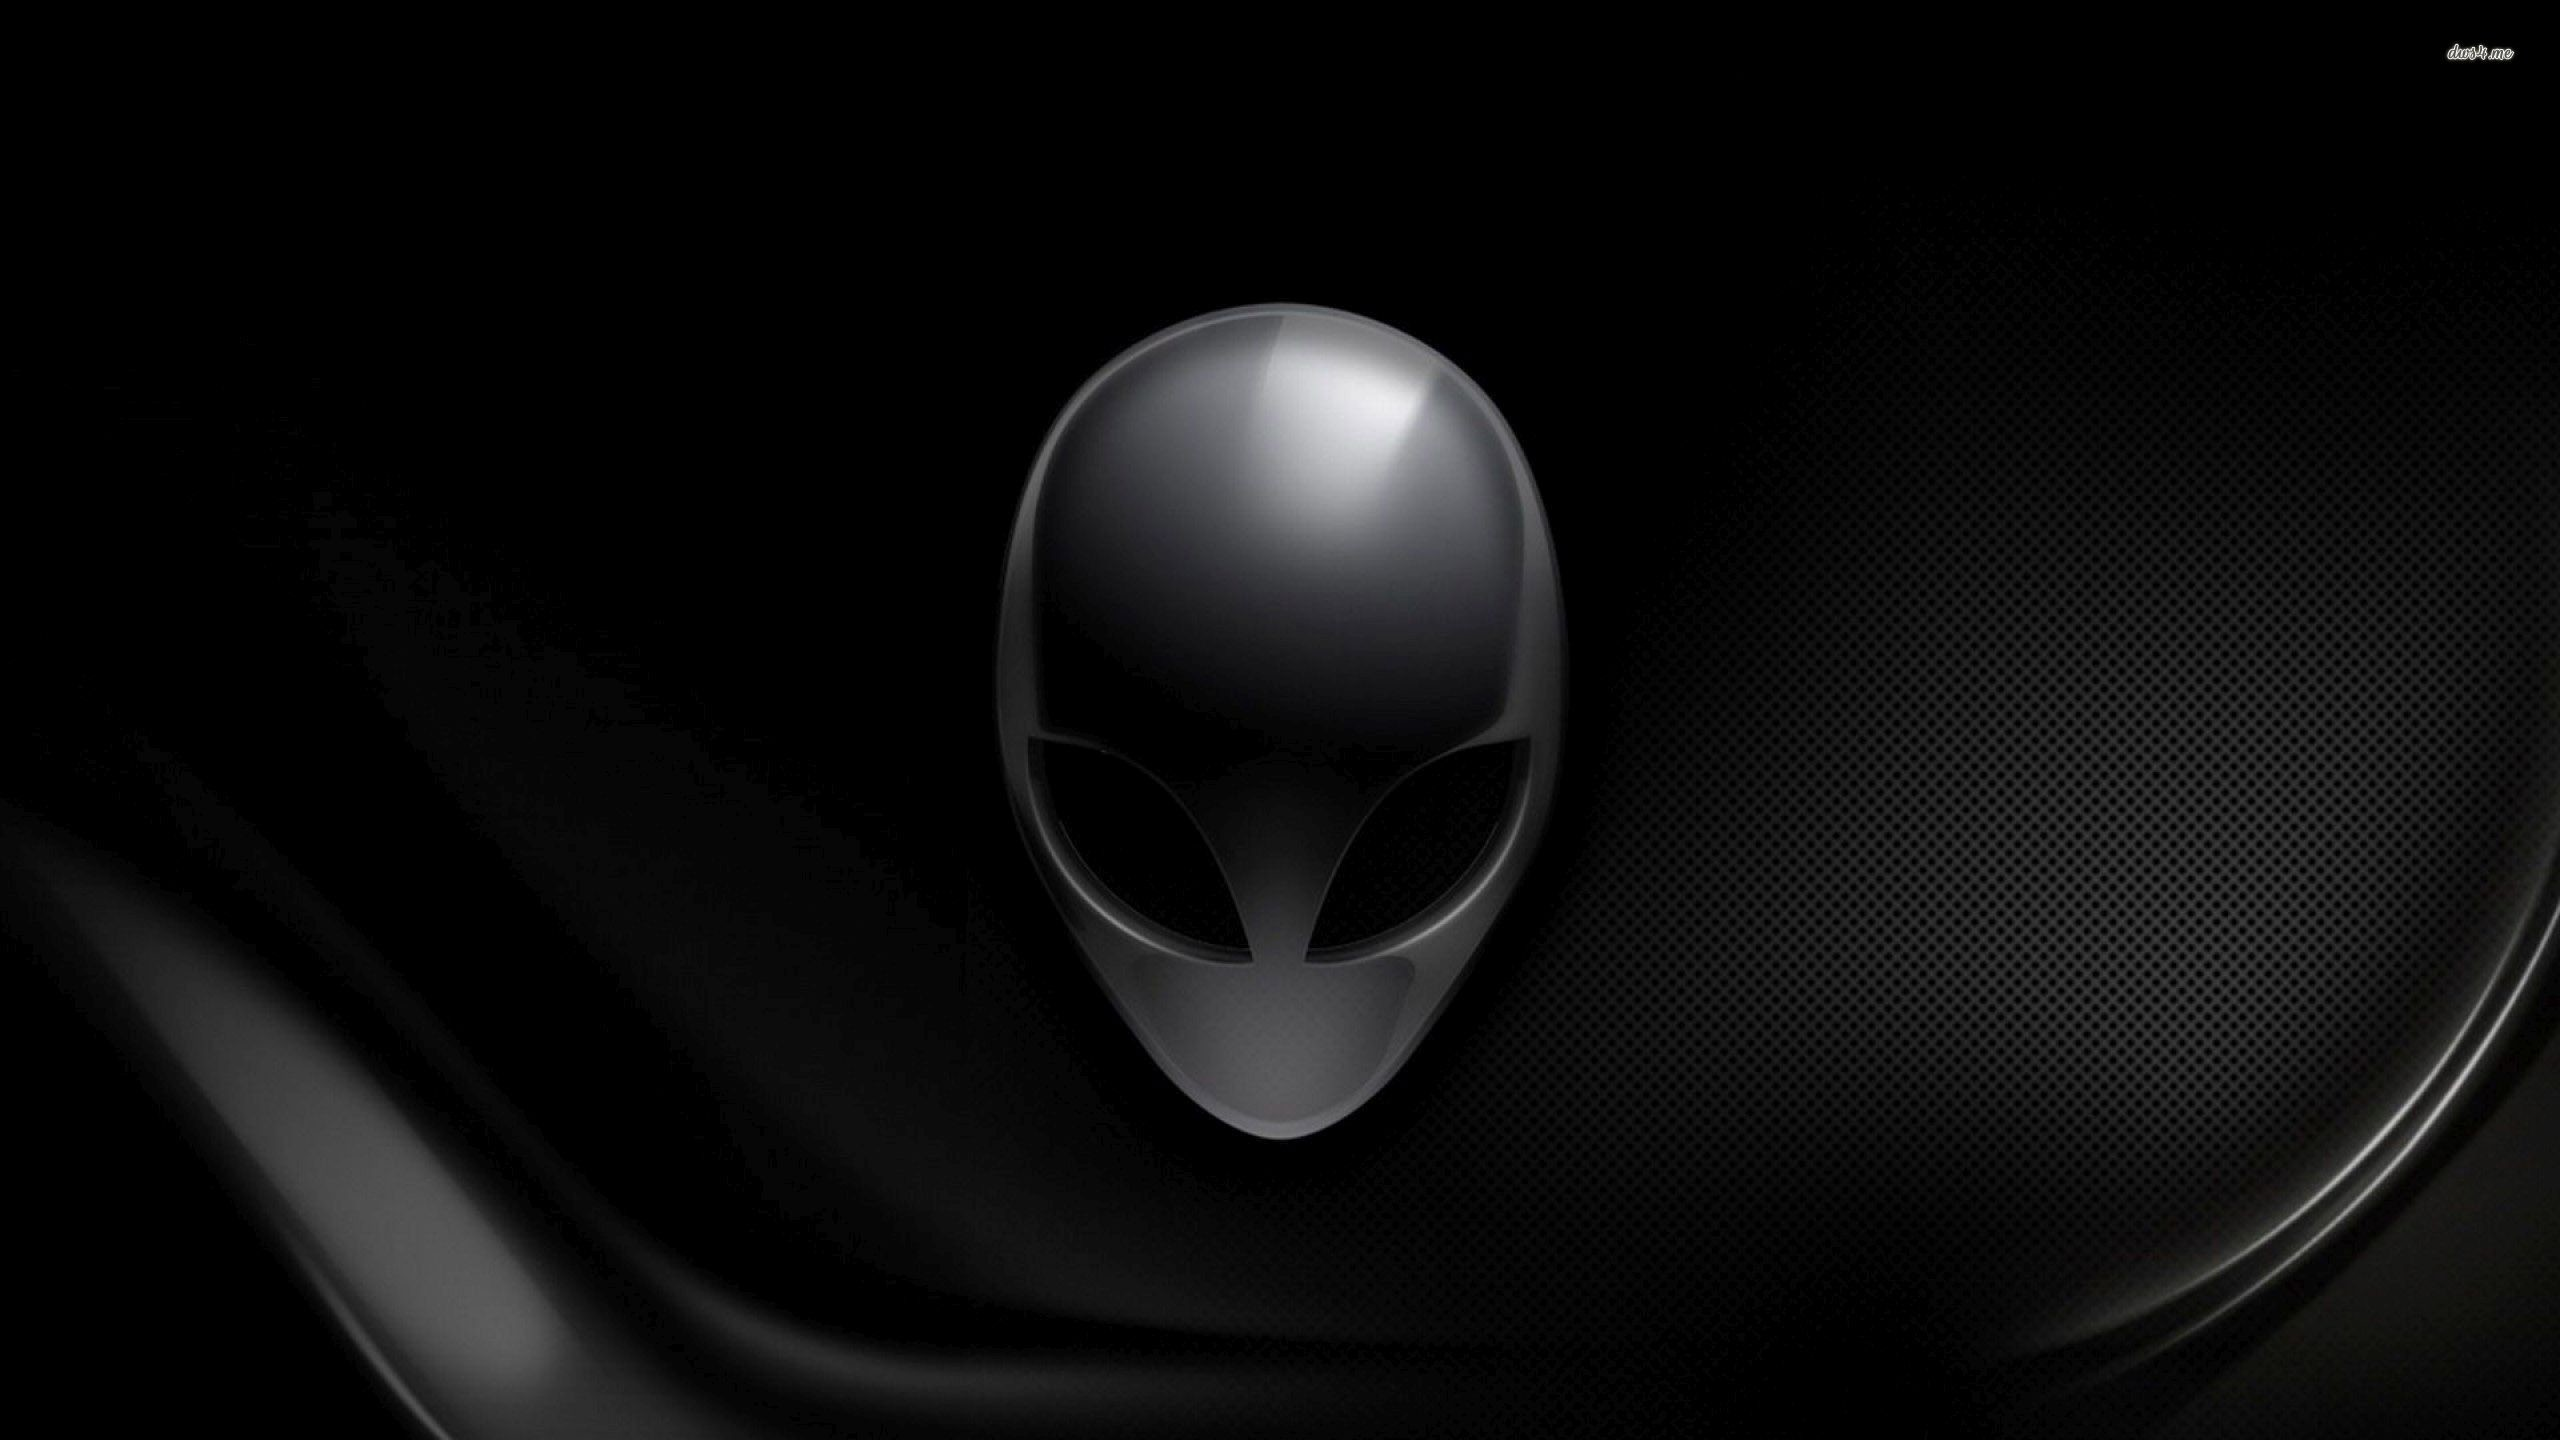 2560x1440 Black Alienware wallpaper - 1203685